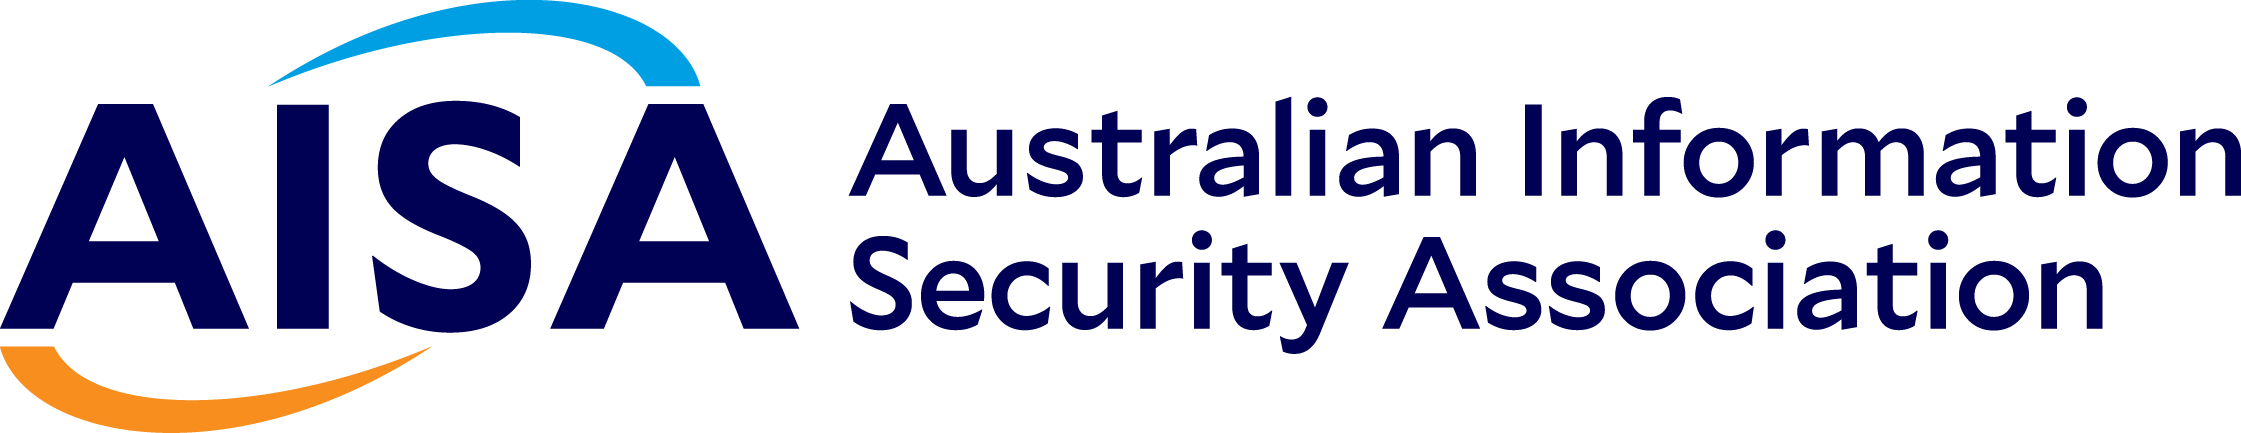 AISA(Australian Information Security Association) 로고